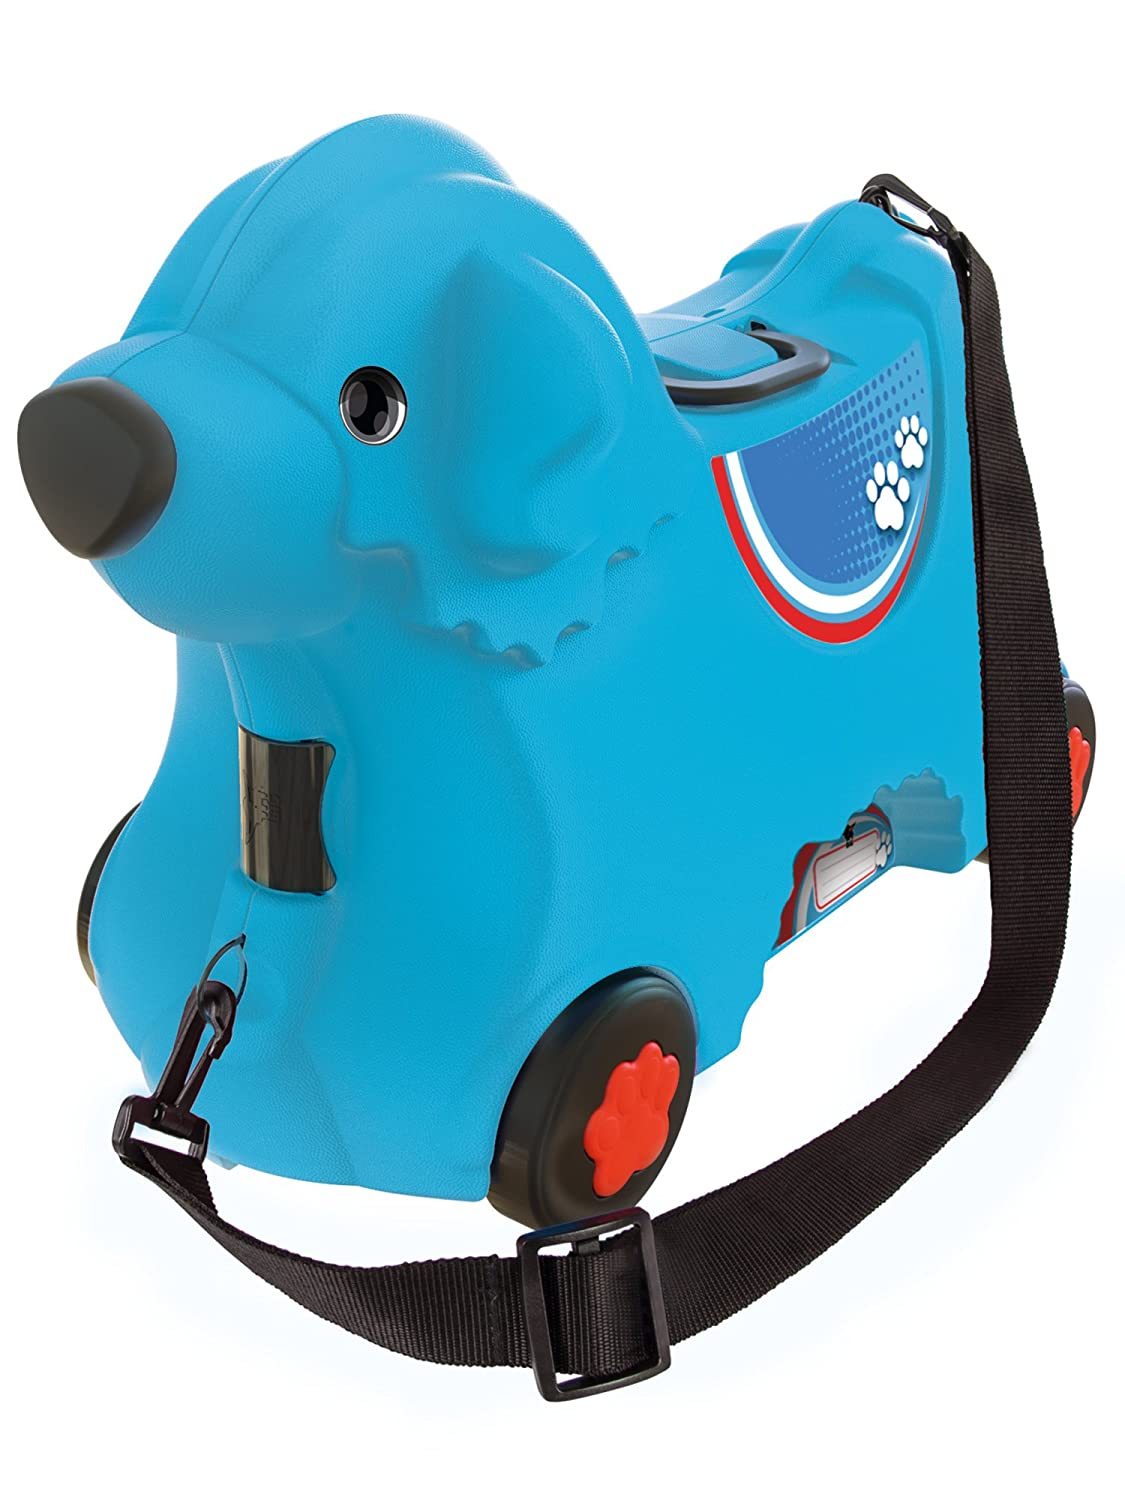 BIG Bobby Trolley - Trunki Alternative